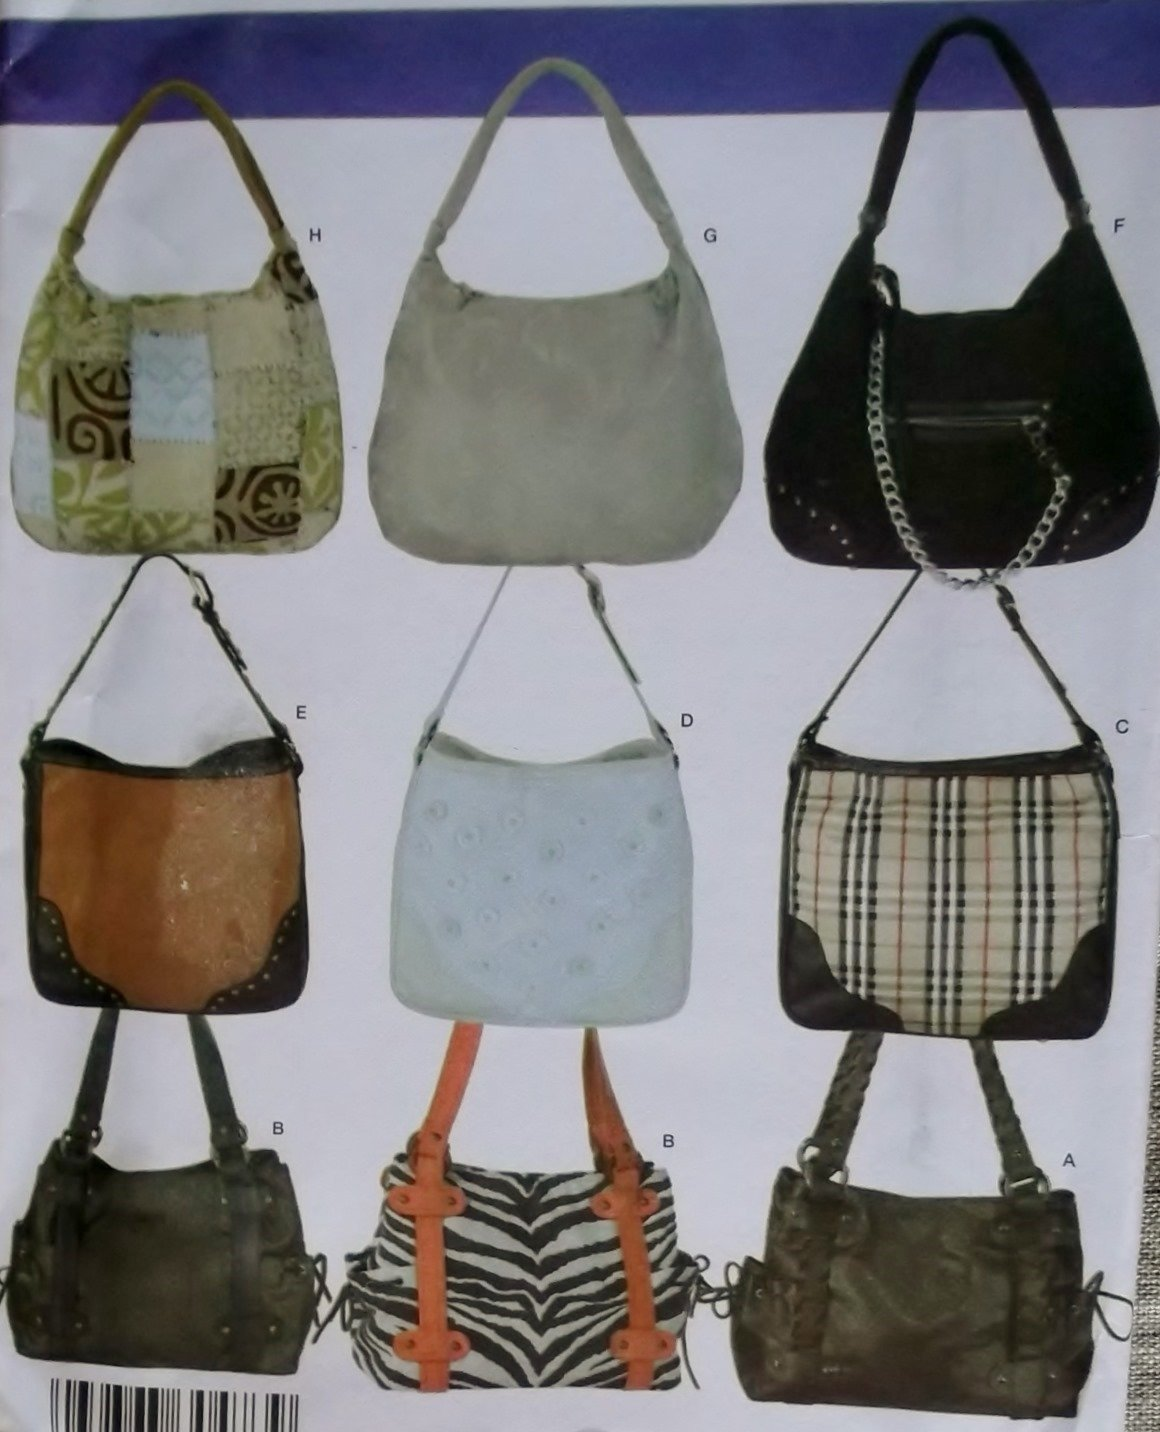 Simplicity 3828 Sewing Pattern Donna Lang Accesories Handbags in 3 sizes, Uncut